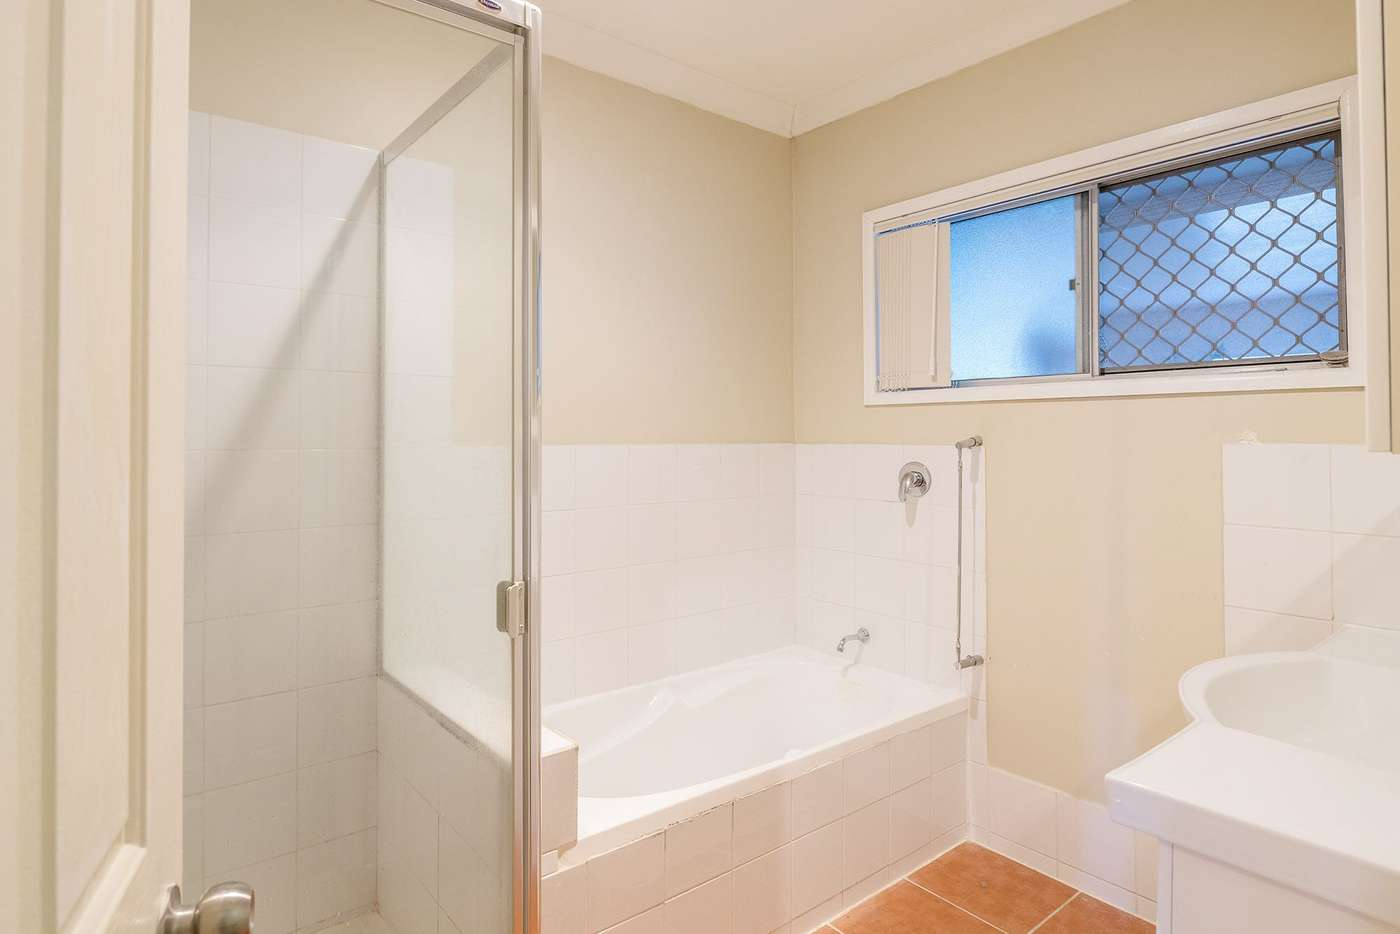 Seventh view of Homely house listing, 115 Gaynesford Street, Mount Gravatt QLD 4122